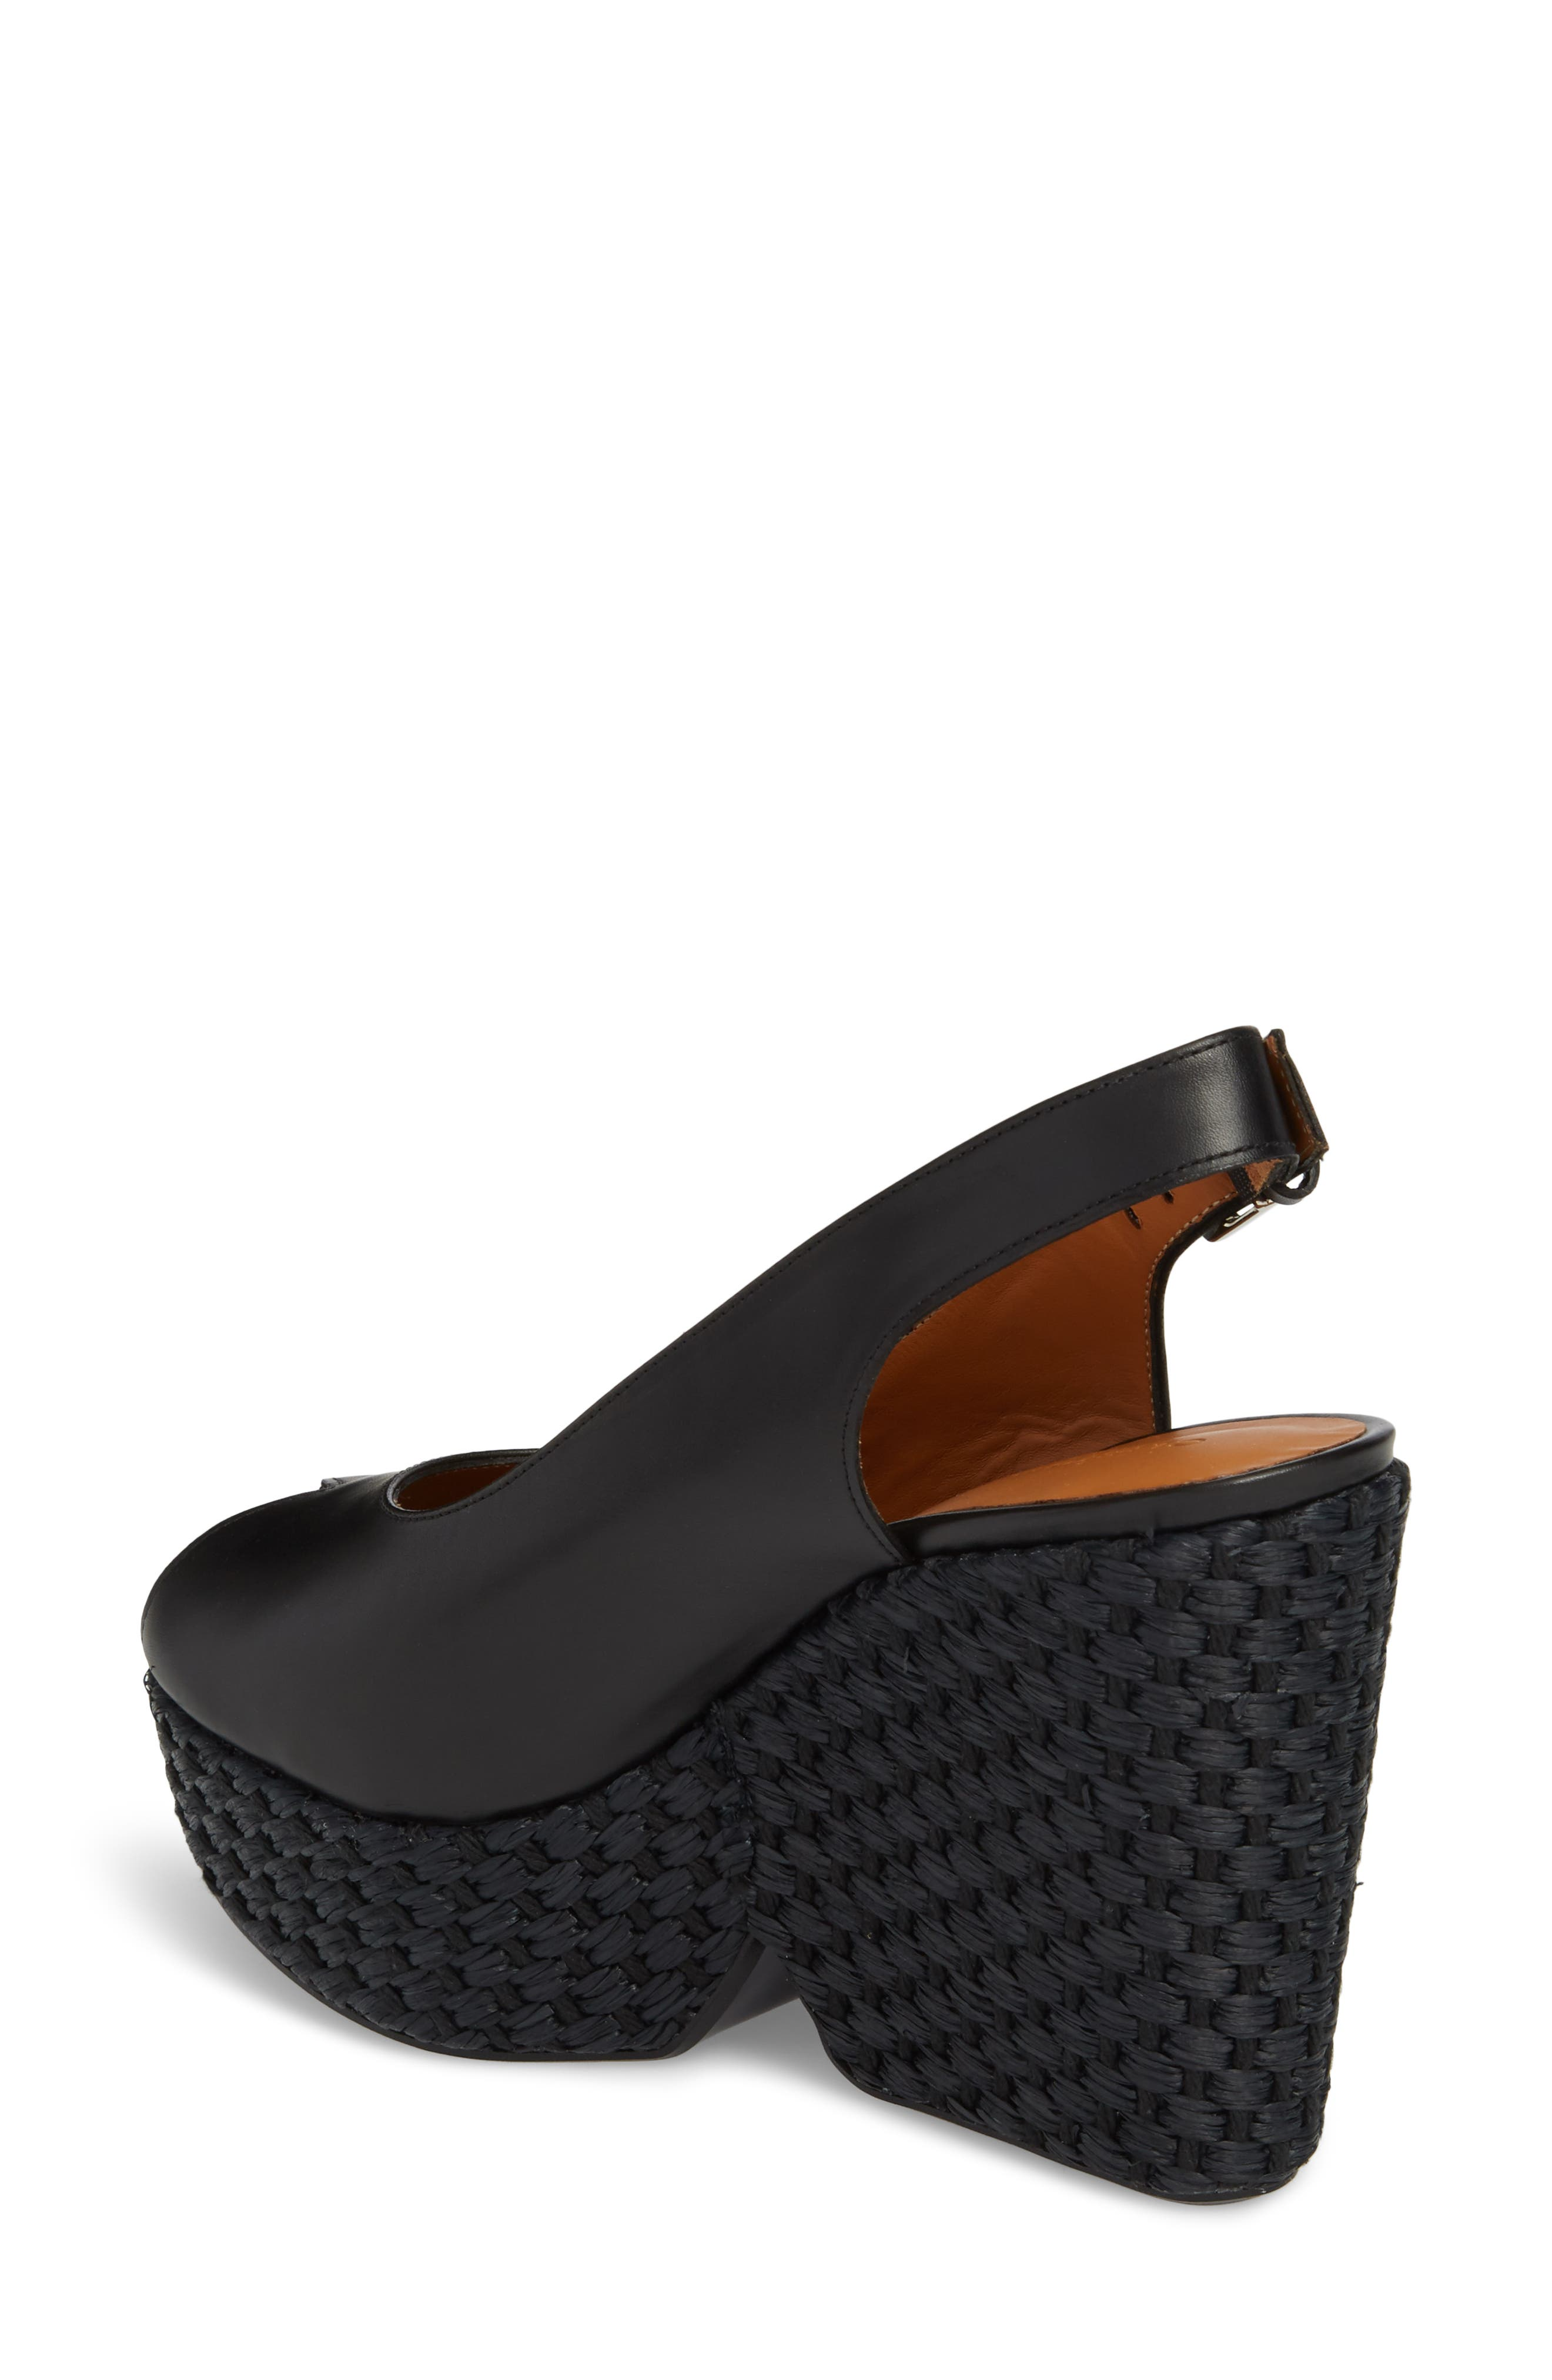 Dylancop Woven Wedge Sandal,                             Alternate thumbnail 2, color,                             011